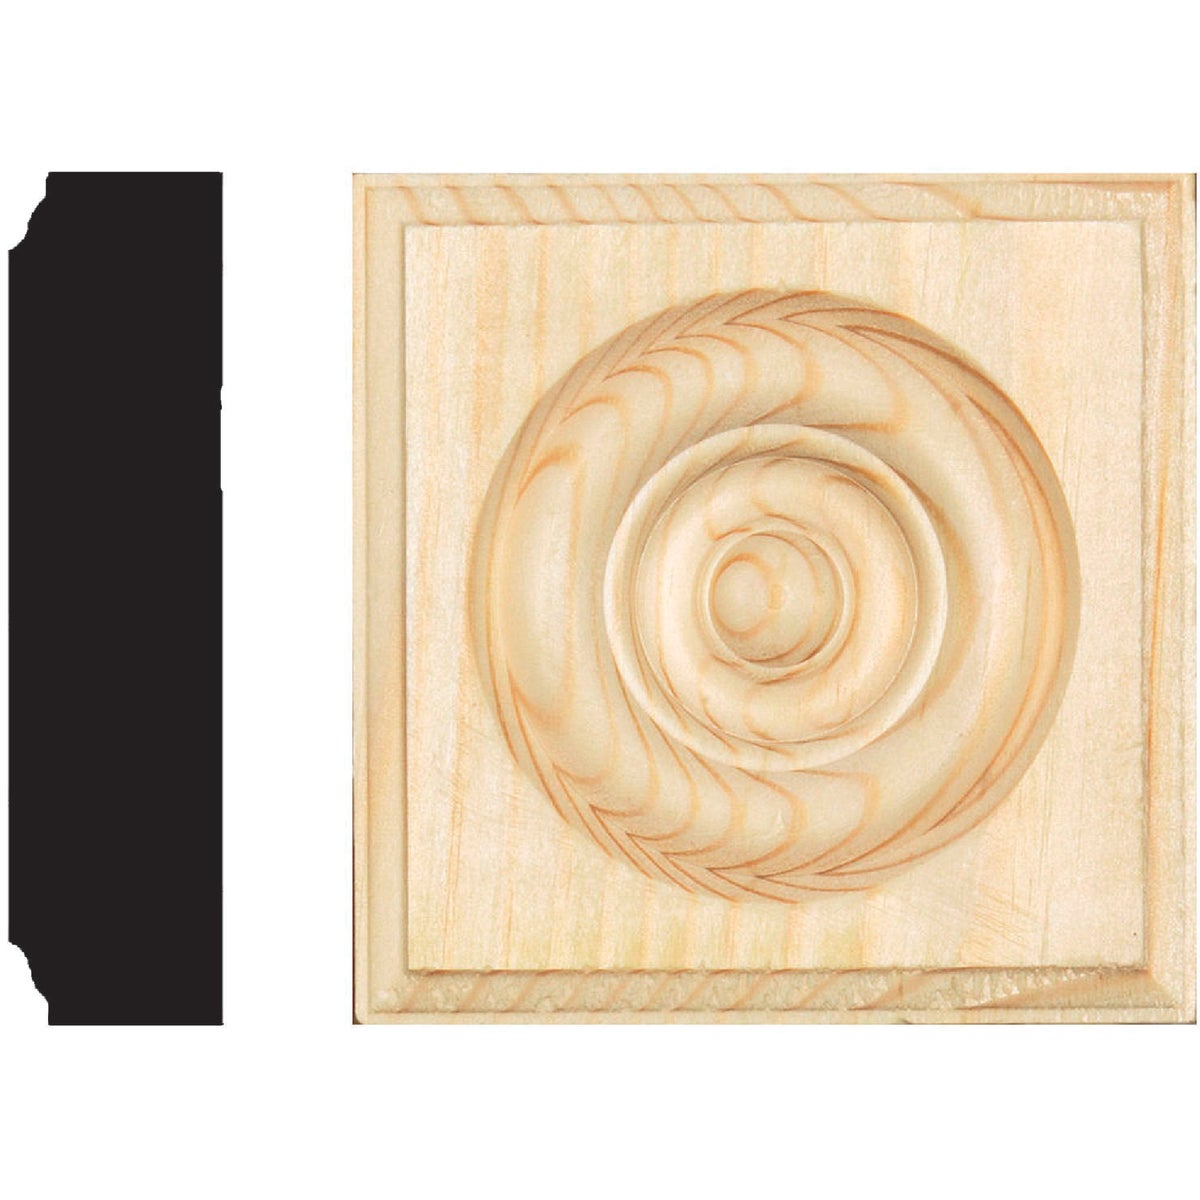 7/8X3-1/2 PINE ROSETTE - R10 by House Of Fara Inc